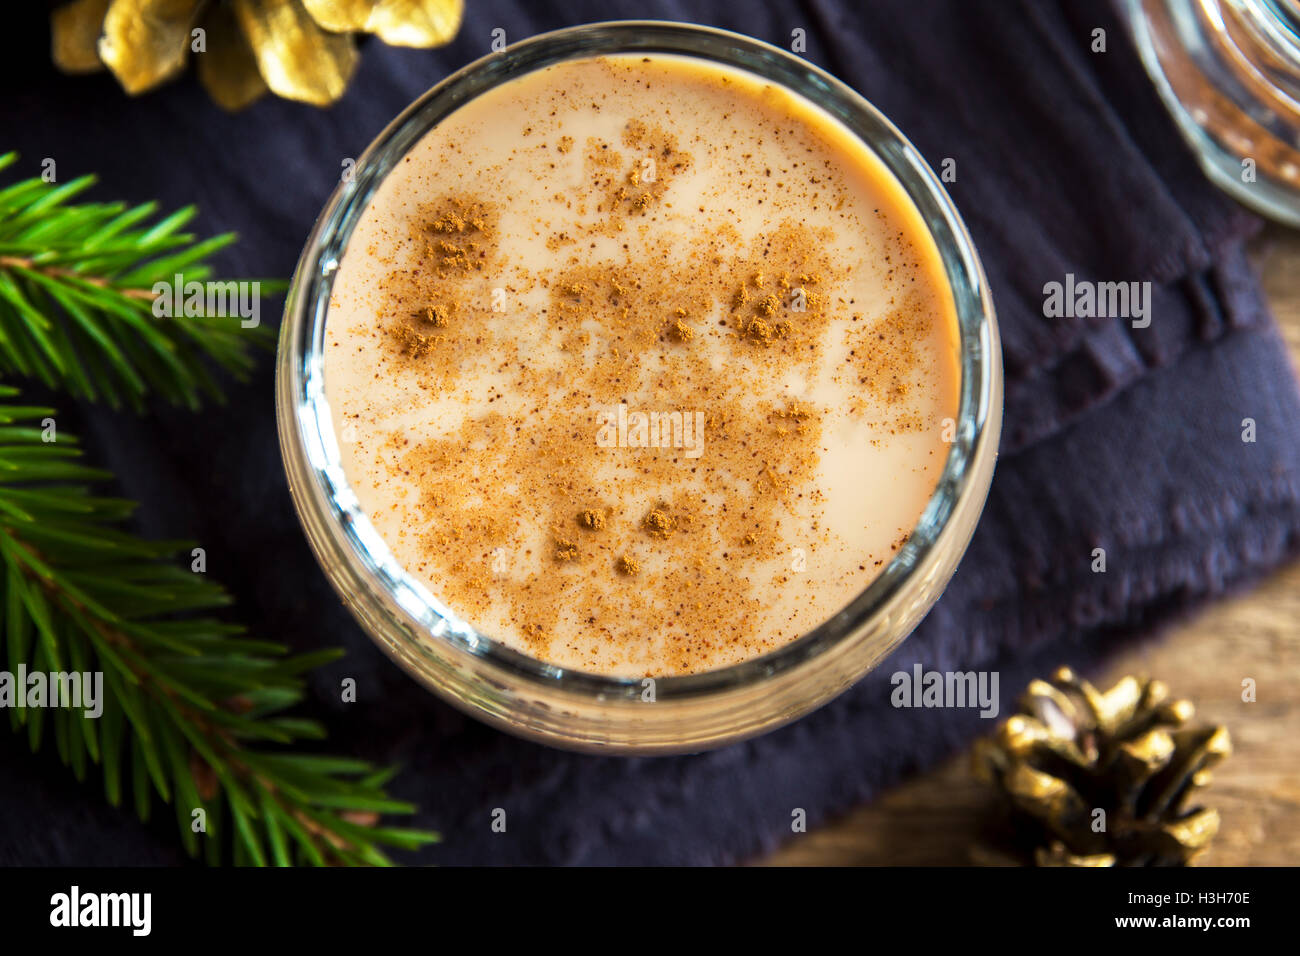 Eggnog with cinnamon in glass close up with Christmas decor  - homemade traditional festive drink for Christmas - Stock Image